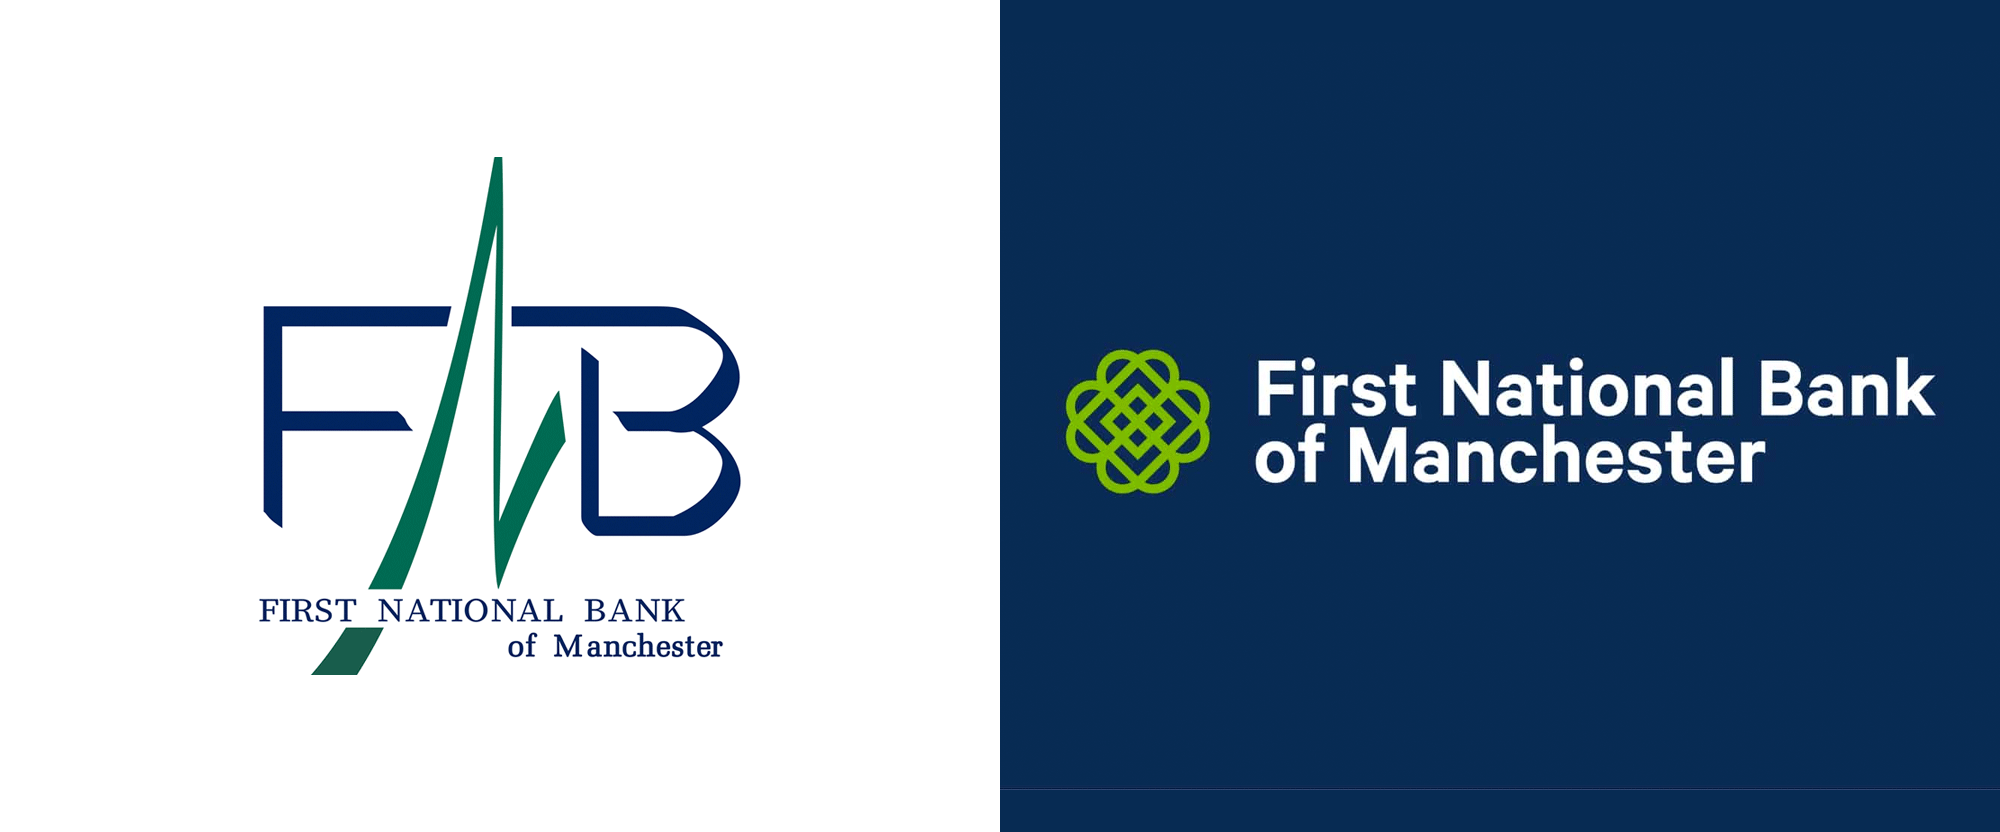 New Logo and Identity for First National Bank of Manchester by Austin McKinney